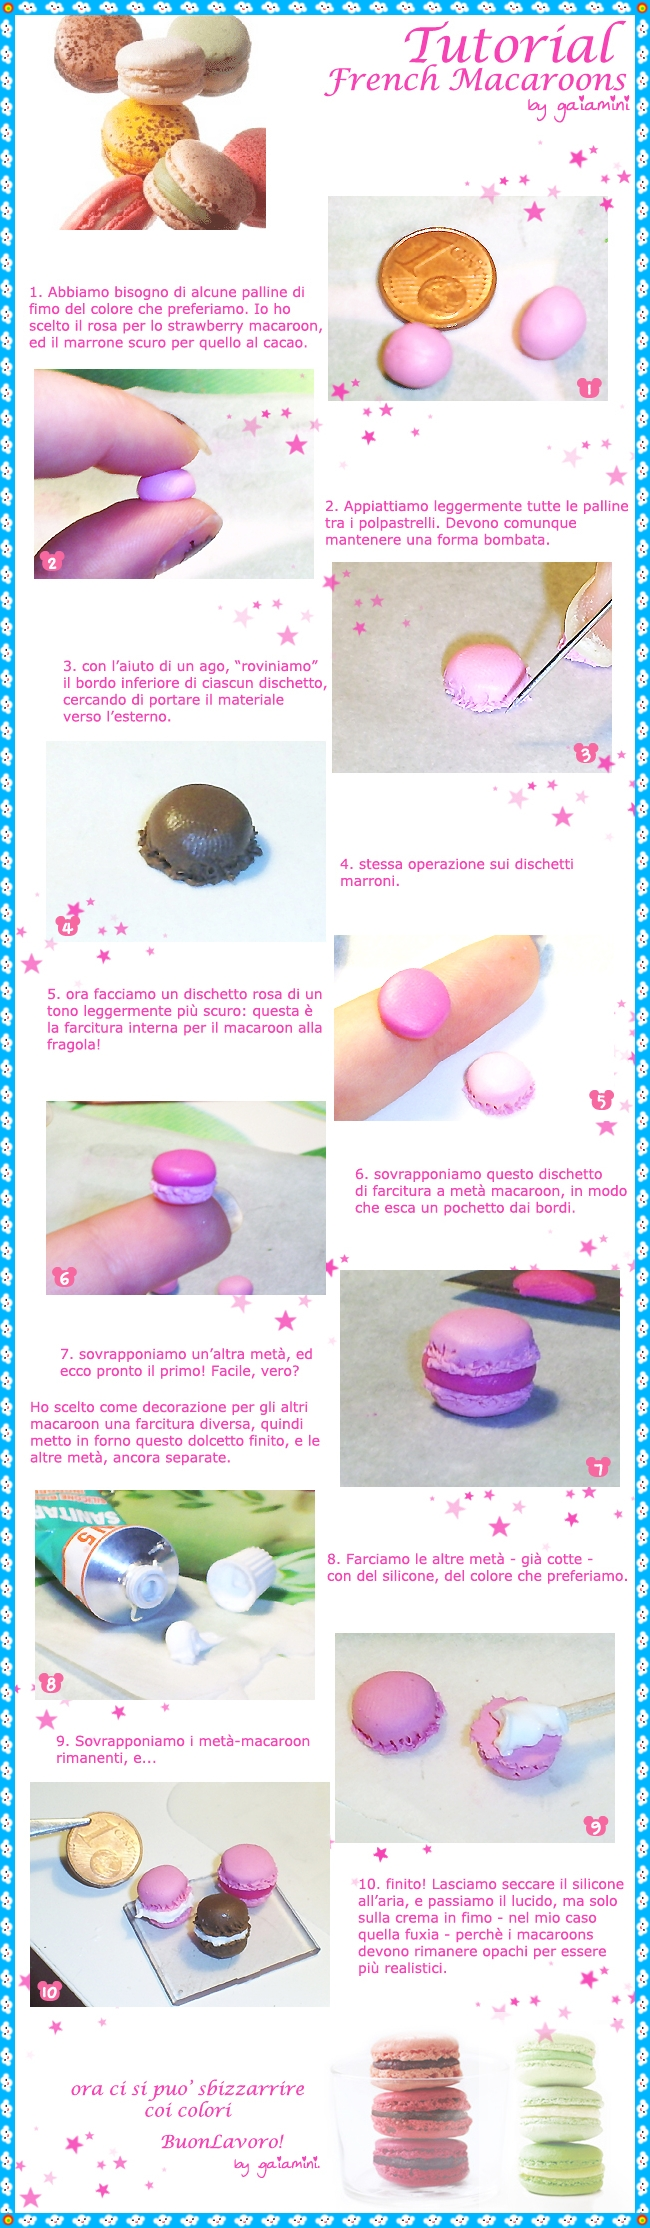 tutorial 3 - french macaroons by gaiamini